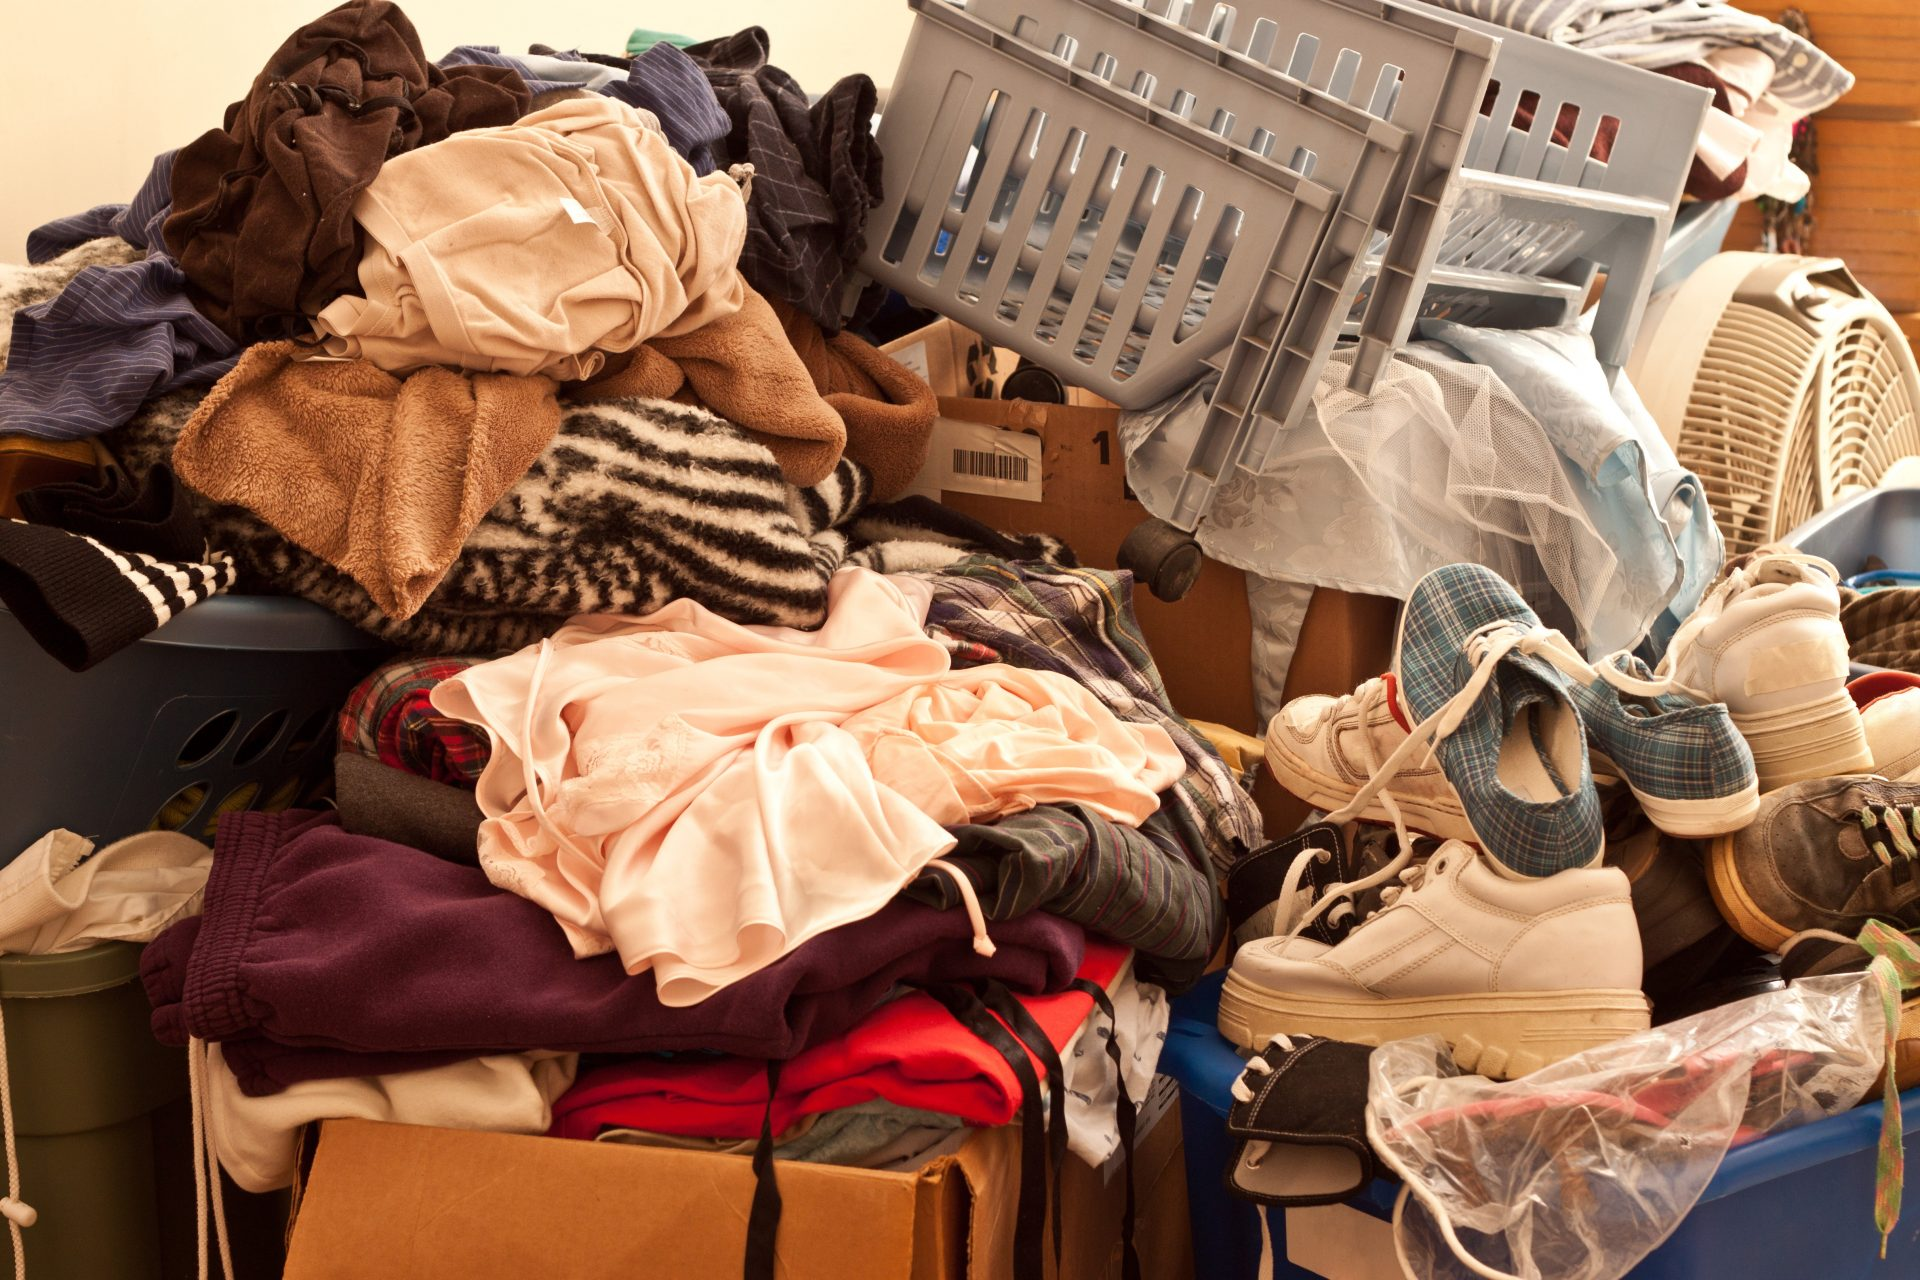 Pile of misc items stored in an unorganized fashion